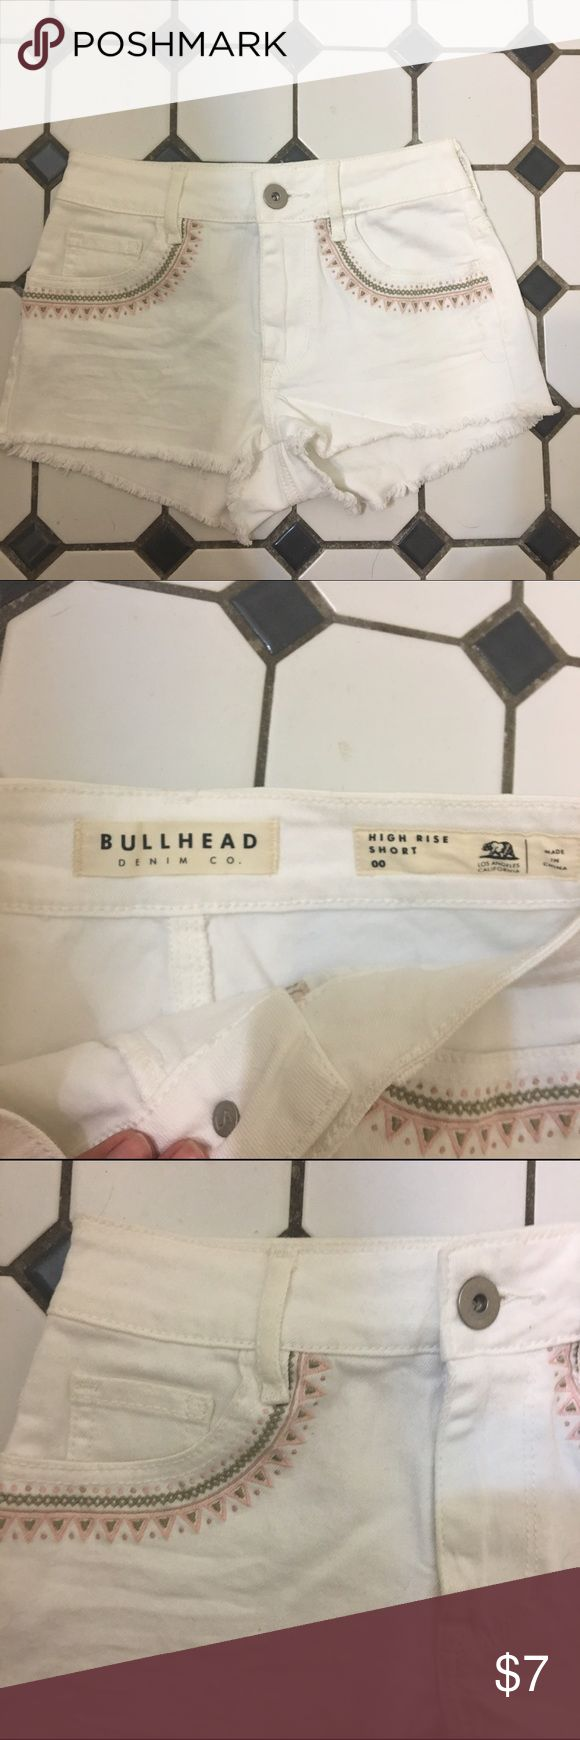 Pacsun bullhead high rise shorts White Pacsun high waisted shorts from bullhead. Size 00. Has cute pink and army green detailing near pockets. Never worn they are just too small for me. Selling cheap trying to get some extra money for my new room Bullhead Shorts Jean Shorts